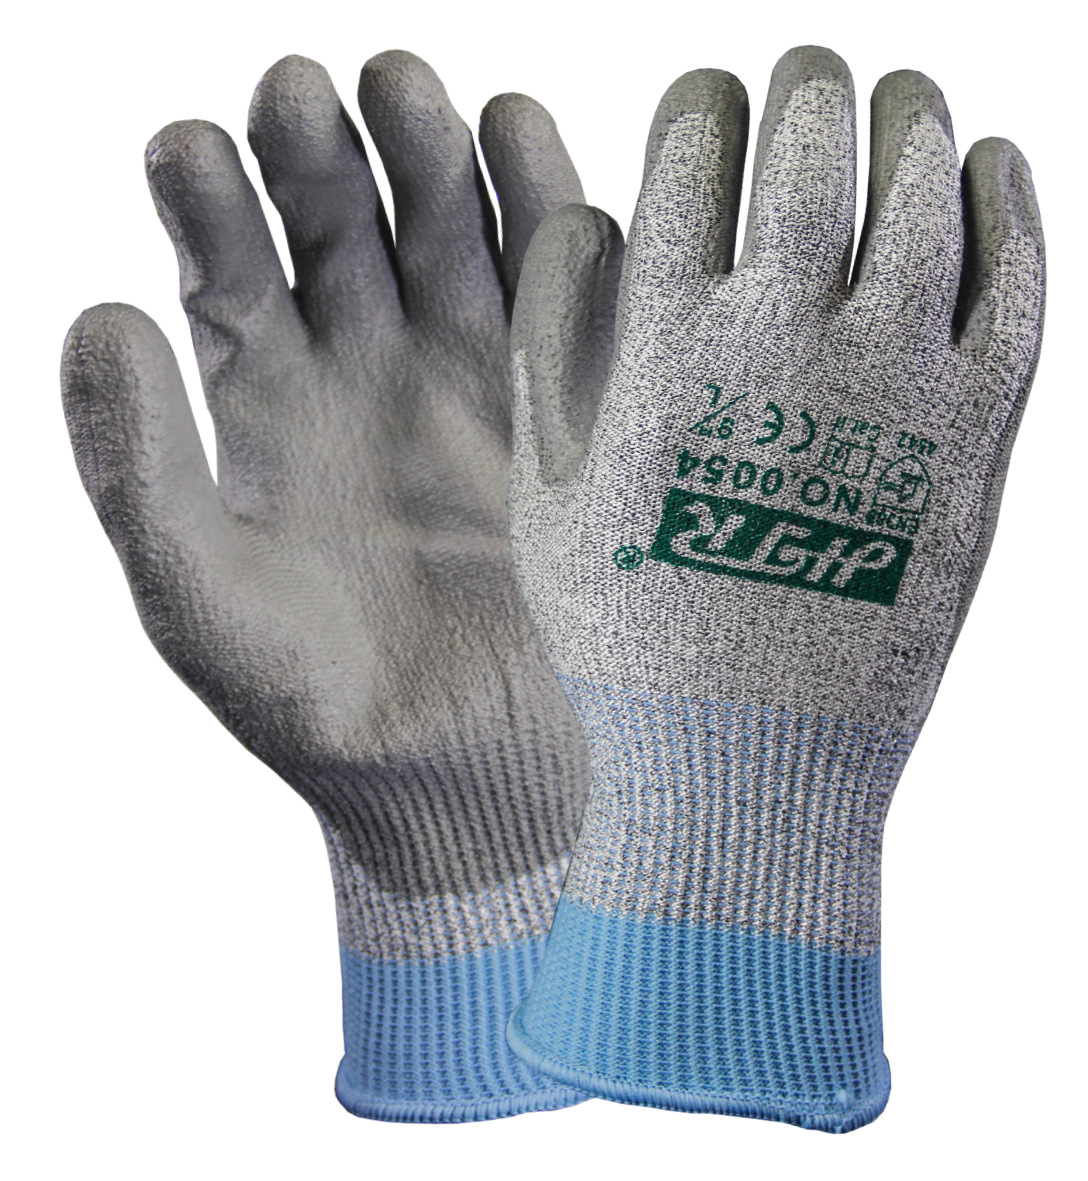 Thick Special Cut-Resistant Fiber Gloves for Industrial and Mechanical Safety